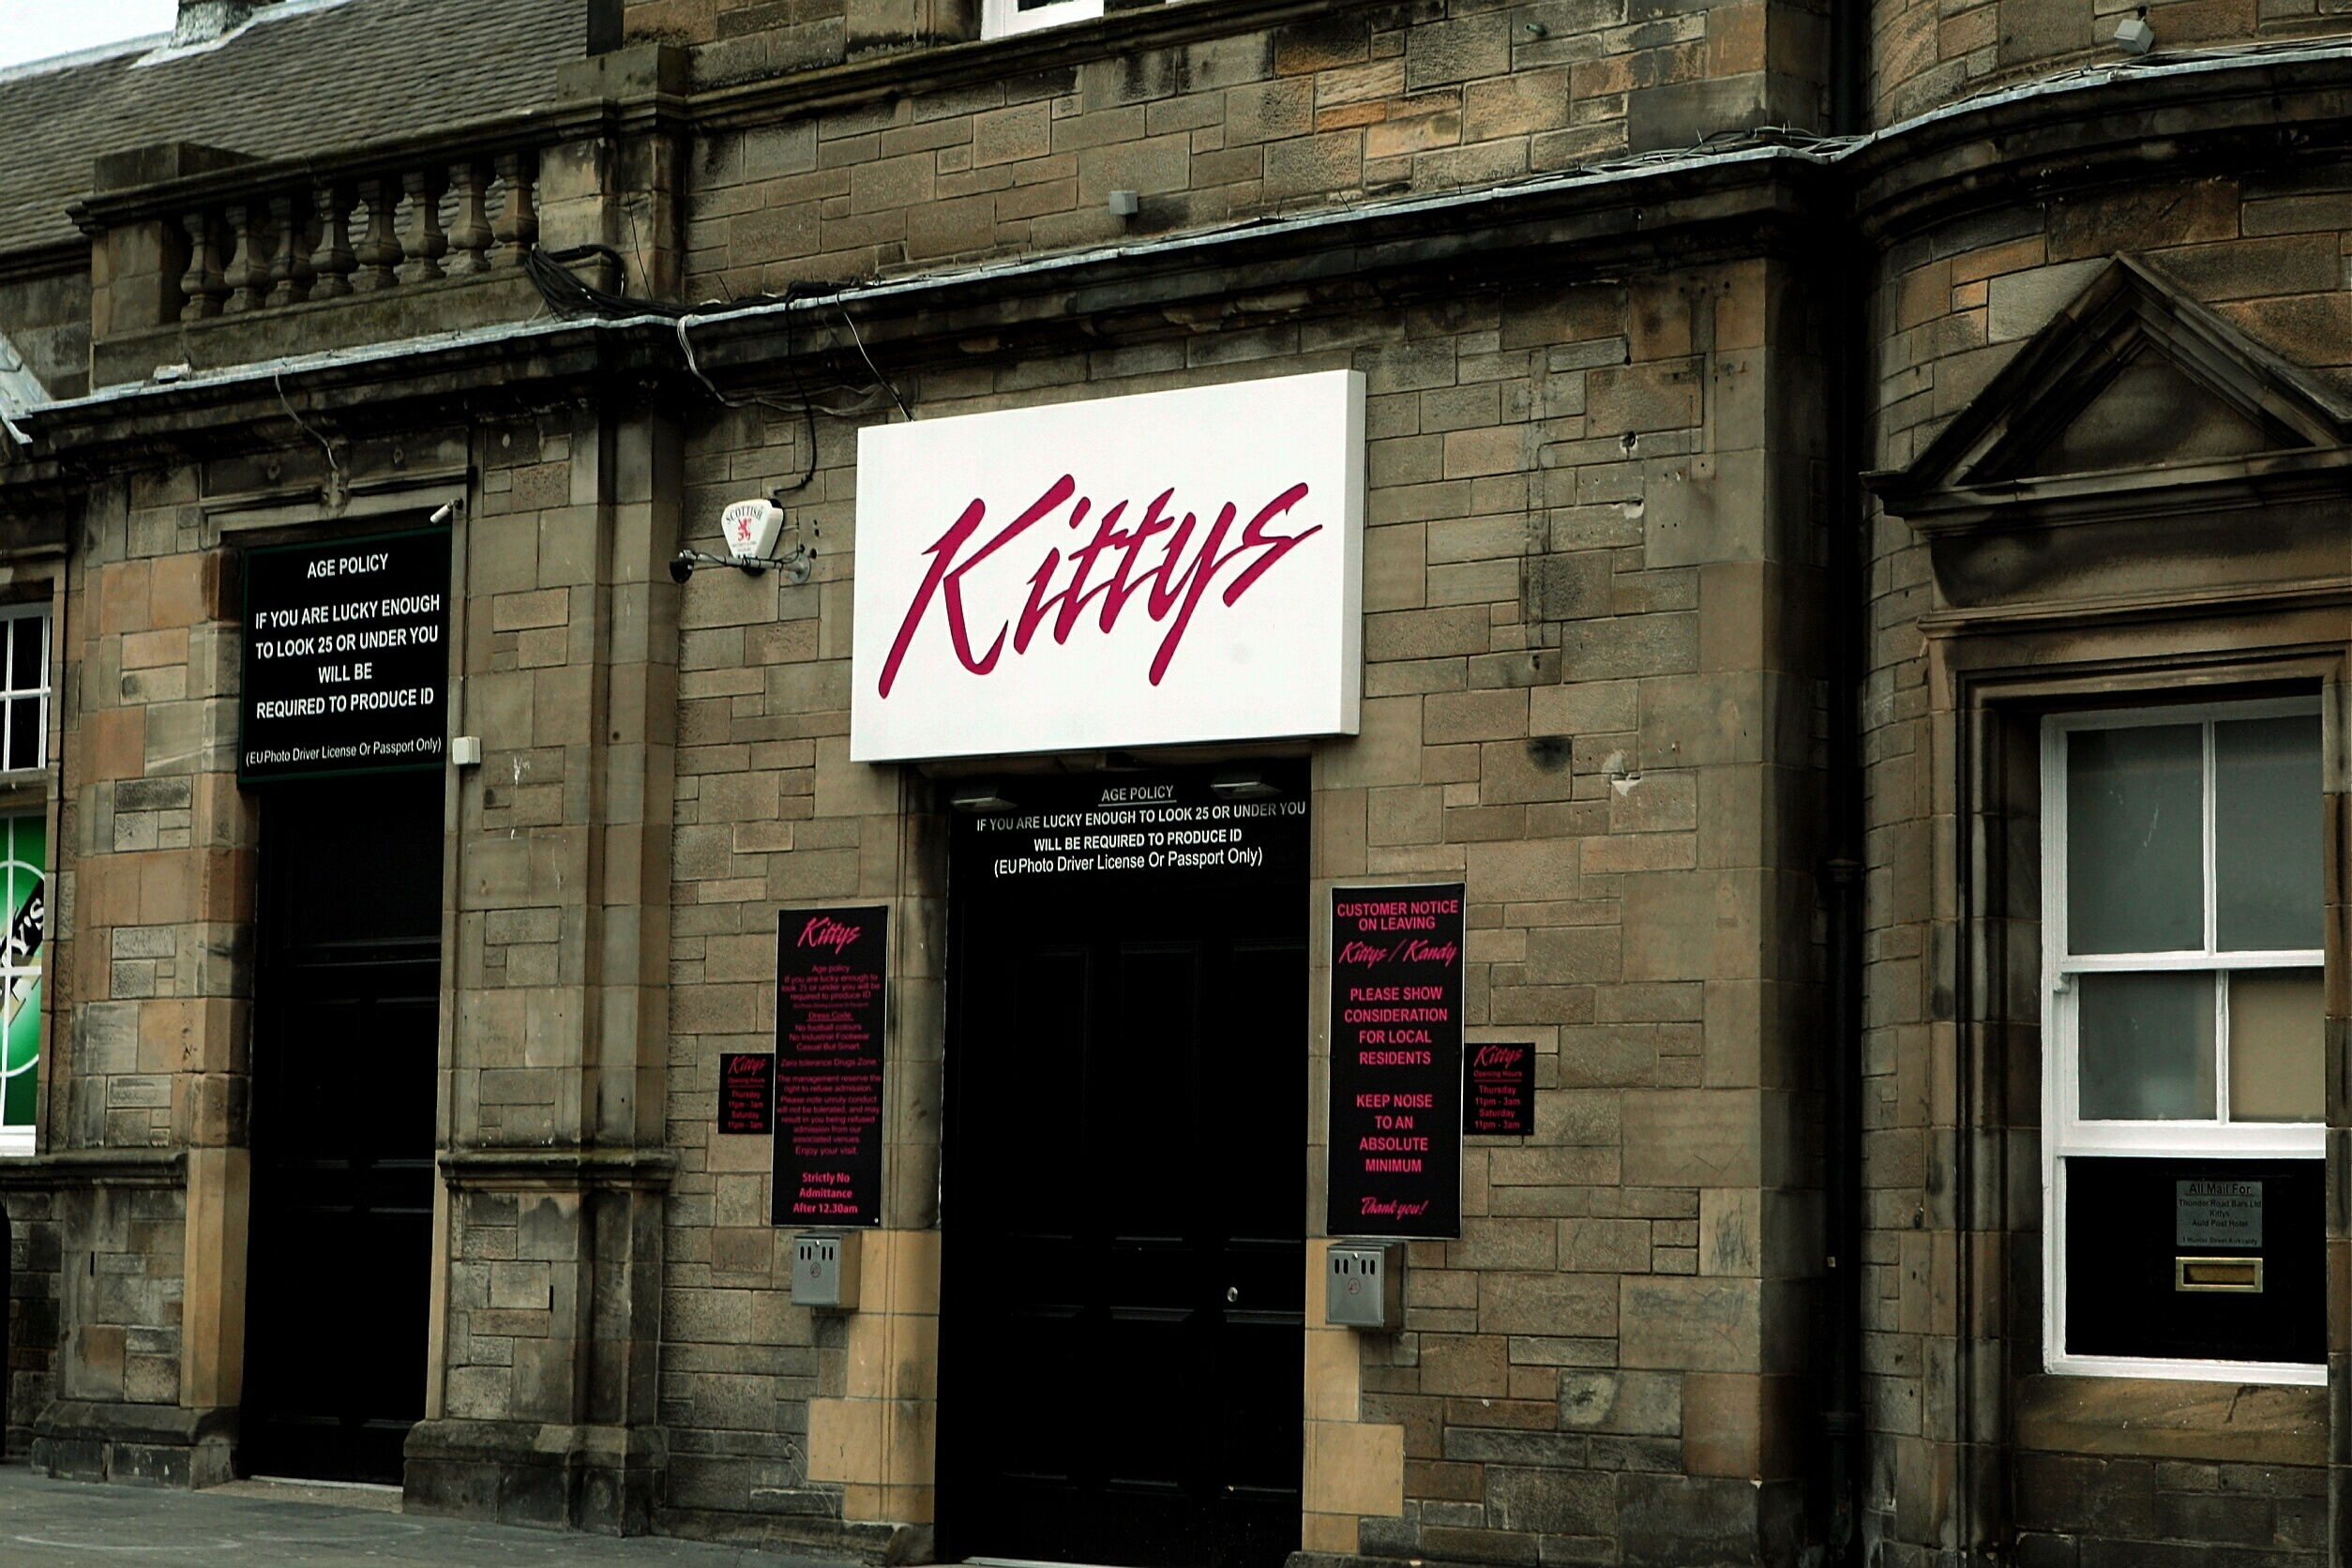 Kitty's nightclub in Kirkcaldy.